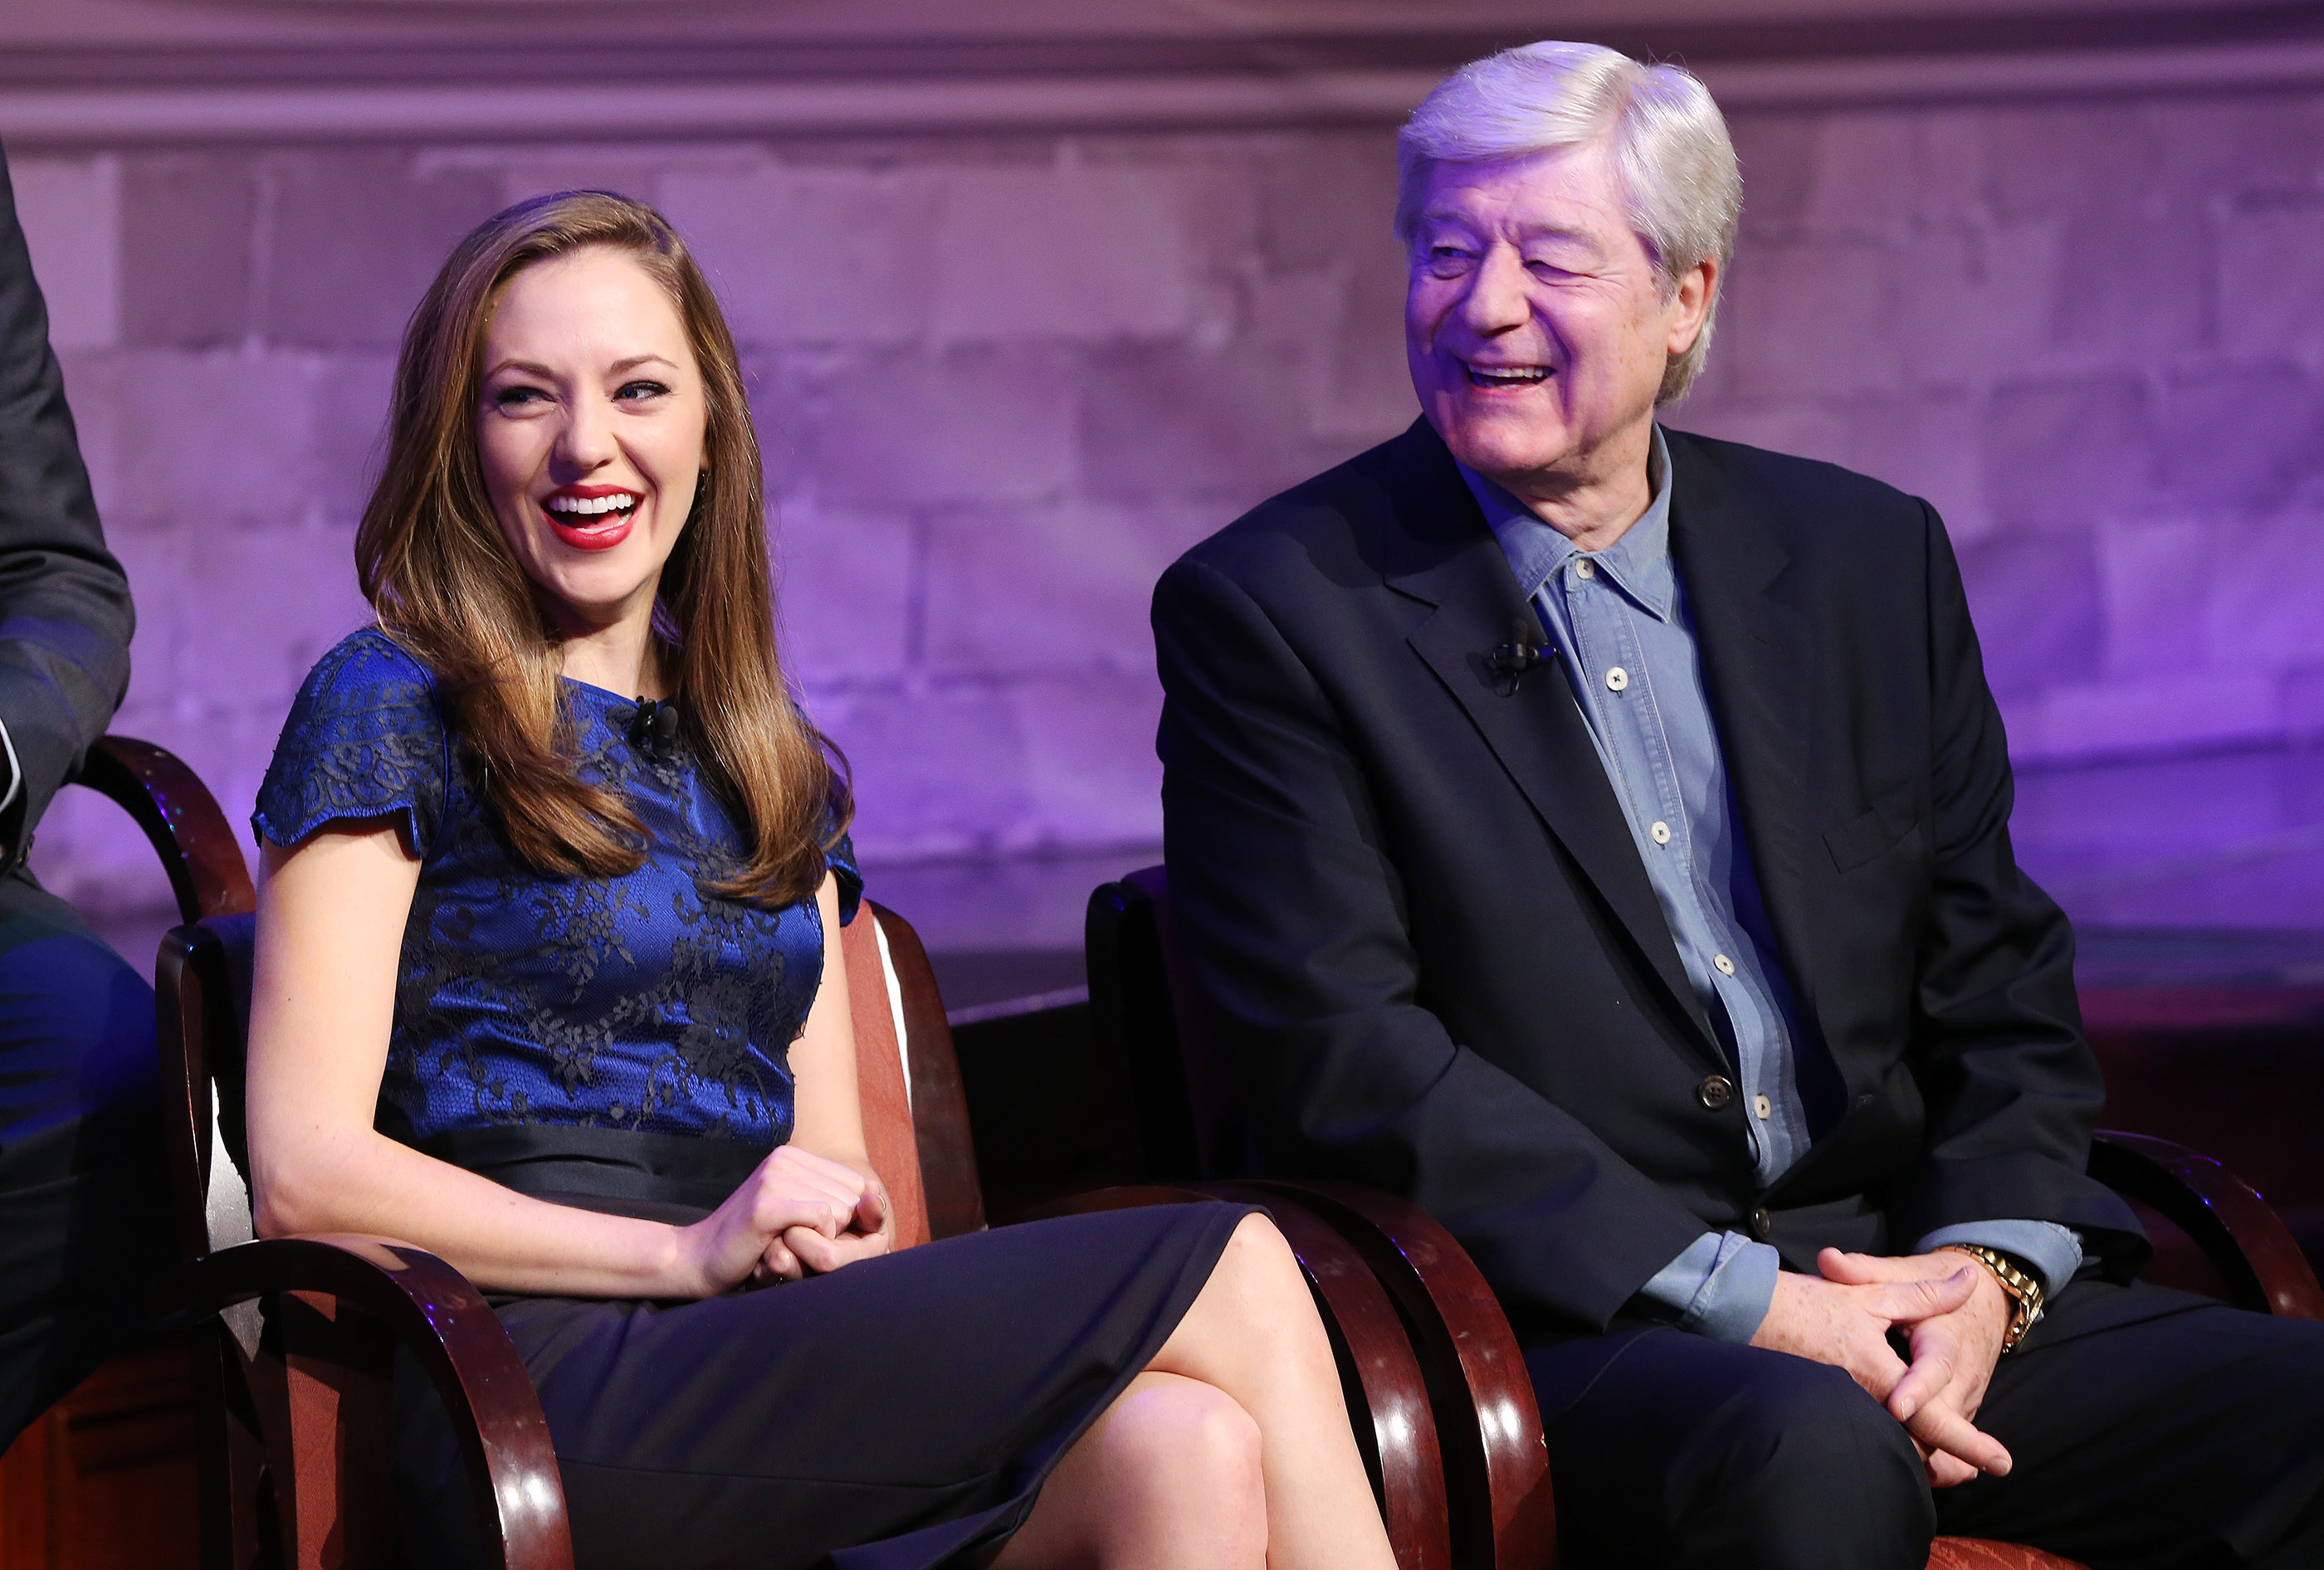 Tabernacle Choir, Orchestra Concert Features Laura Osnes, Martin